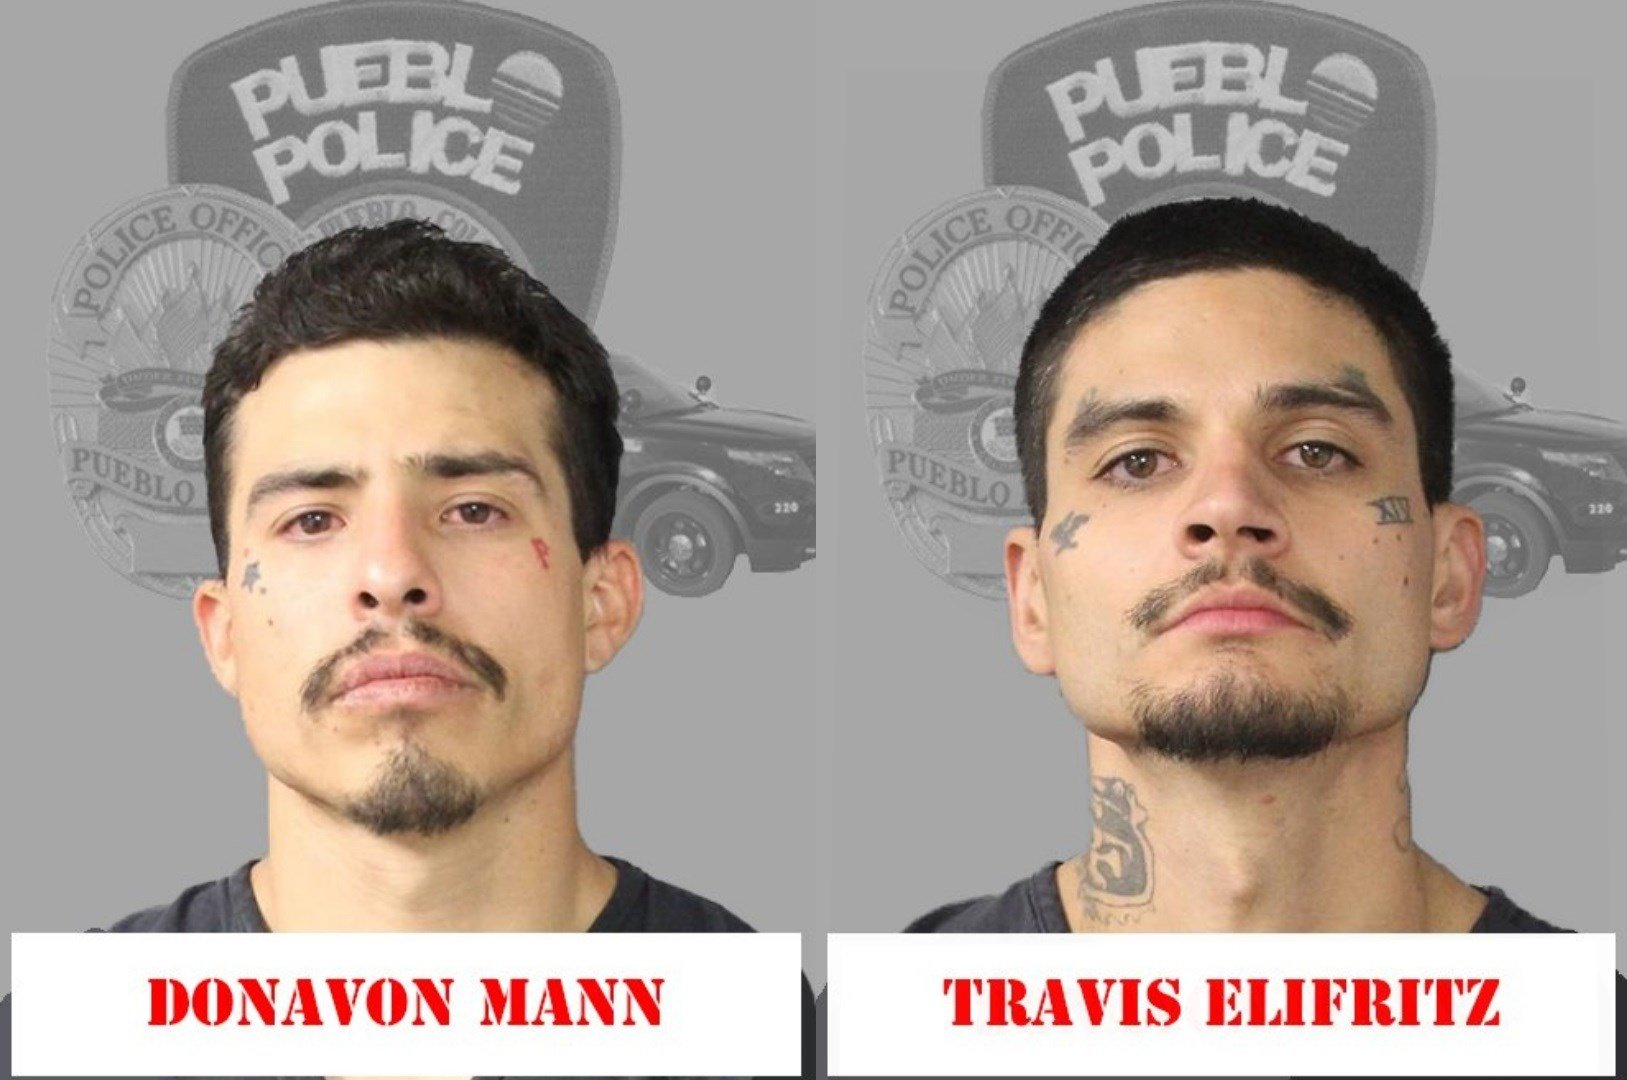 Donavon Mann and Travis Elifritz are charged with attempted murder for a drive-by shooting in Pueblo.